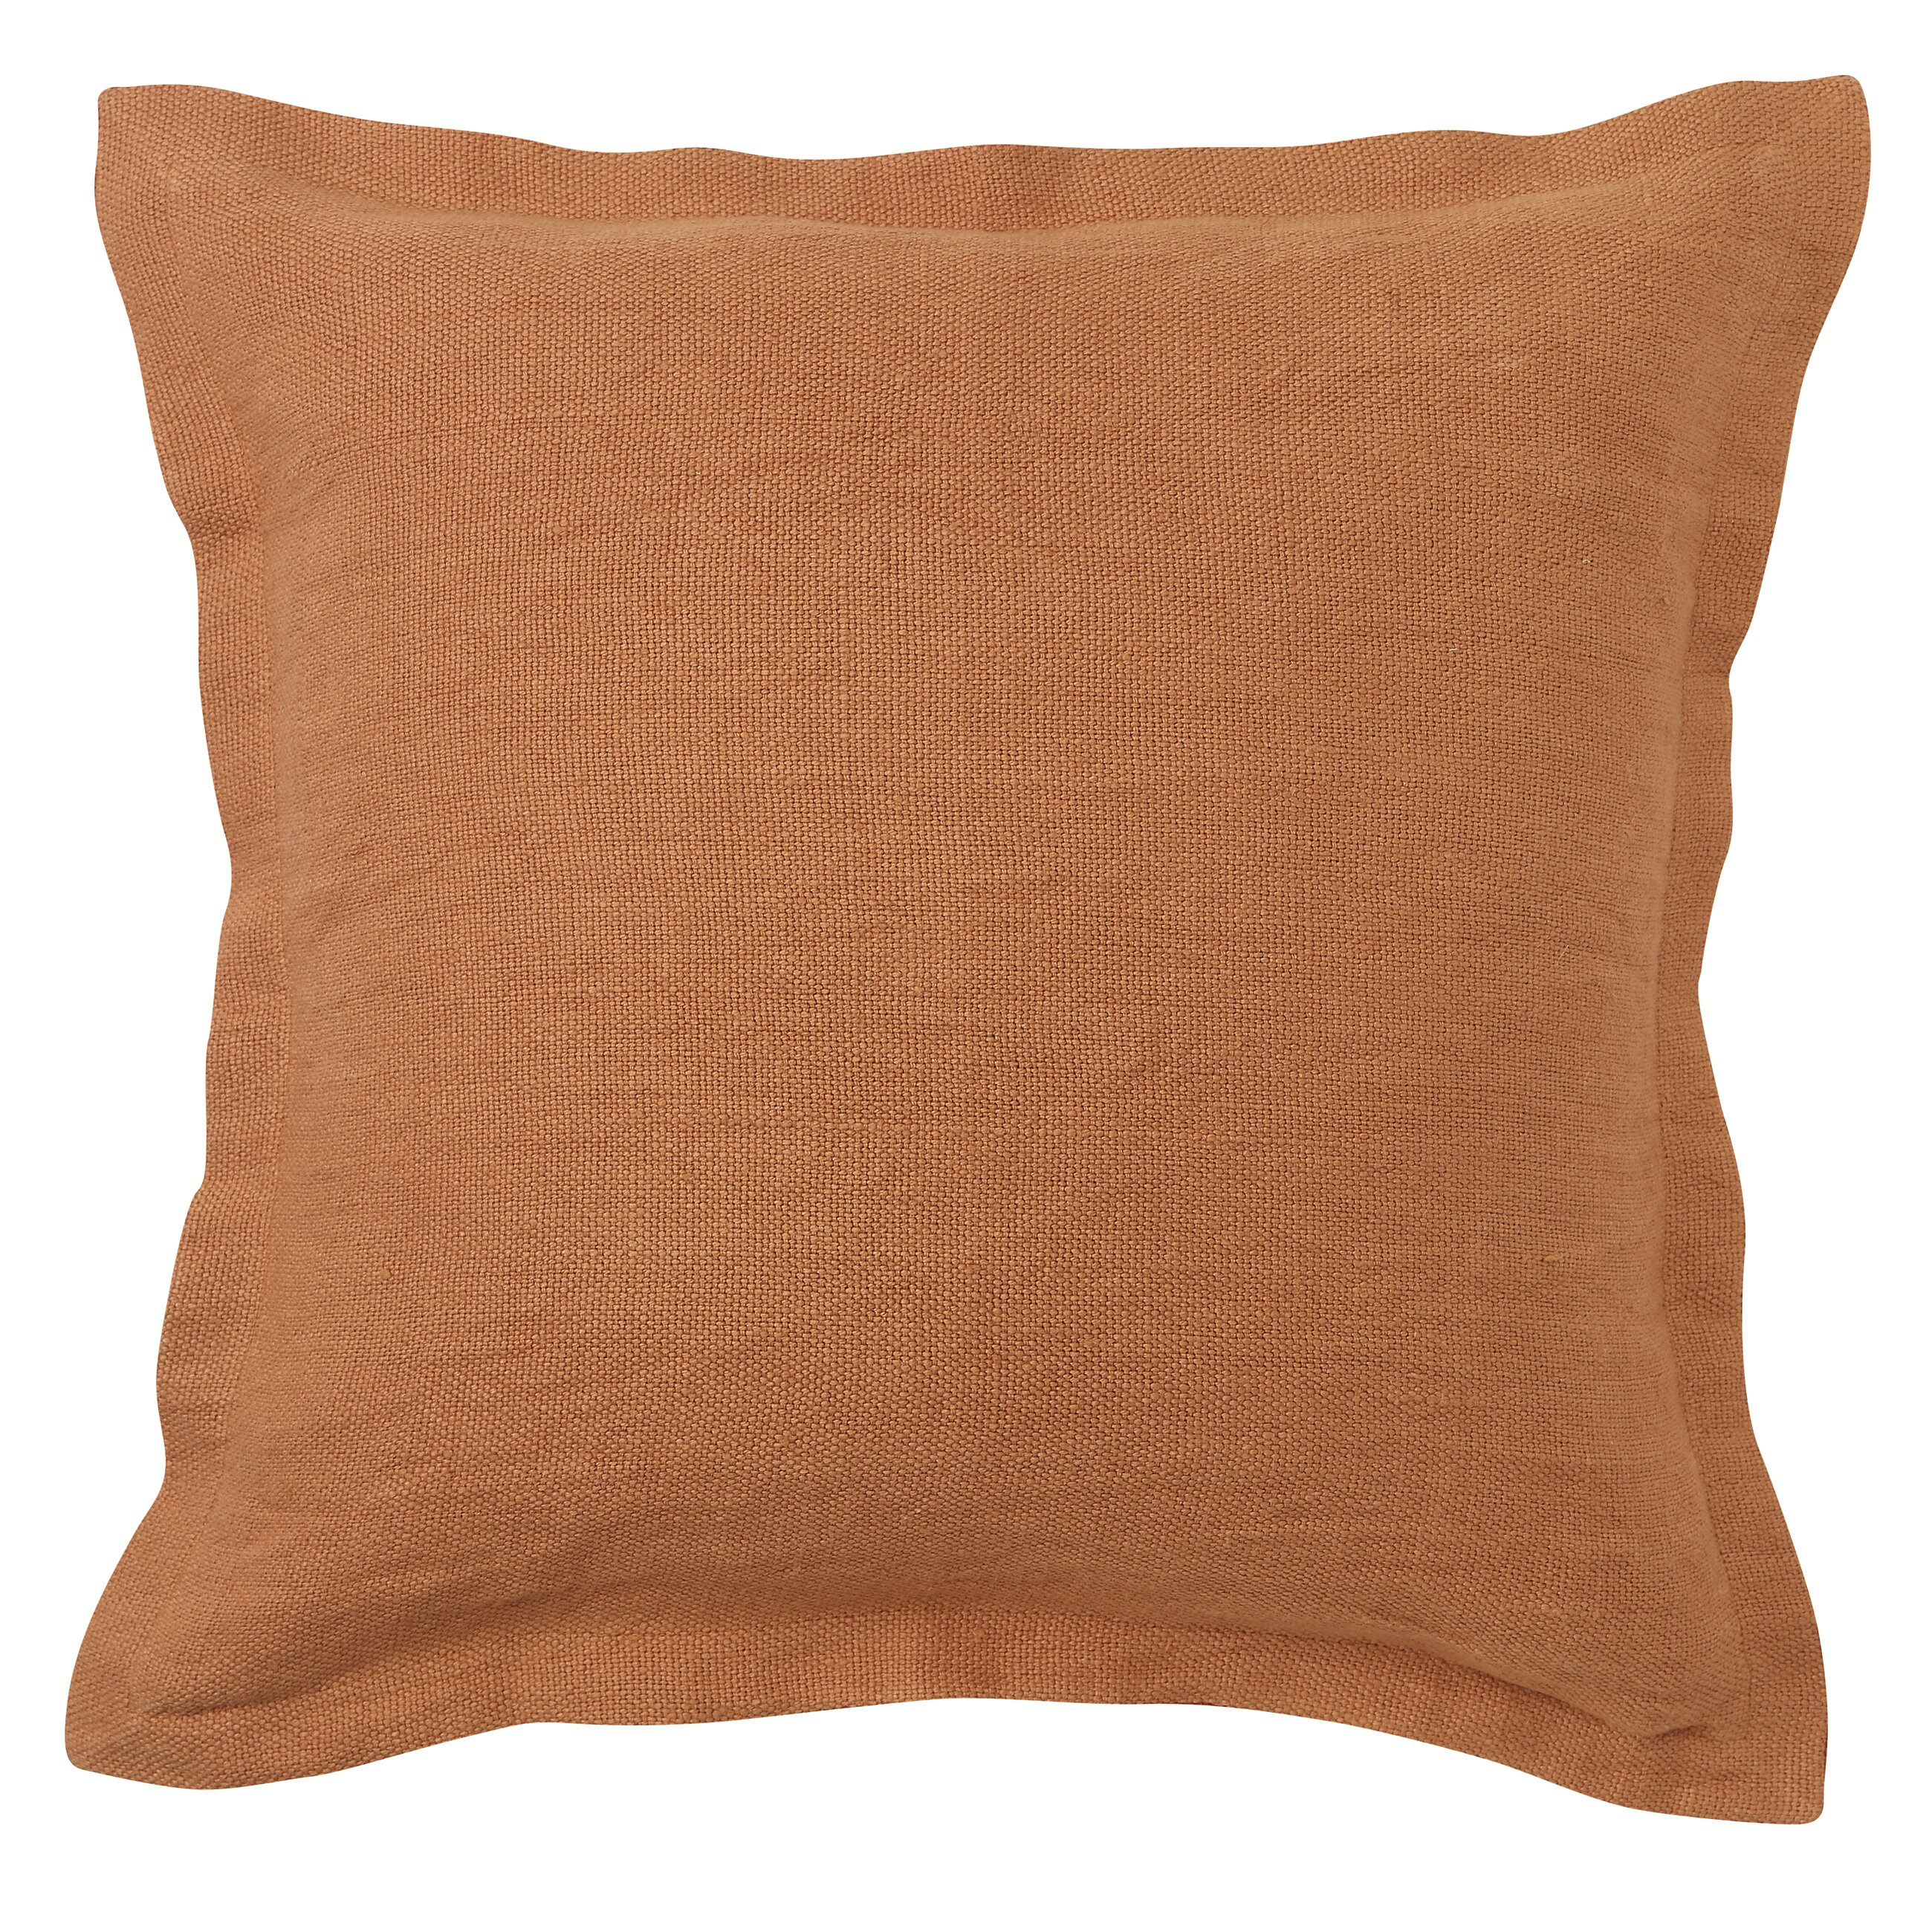 Company C Parasol Linen Throw Pillow & Reviews Wayfair.ca